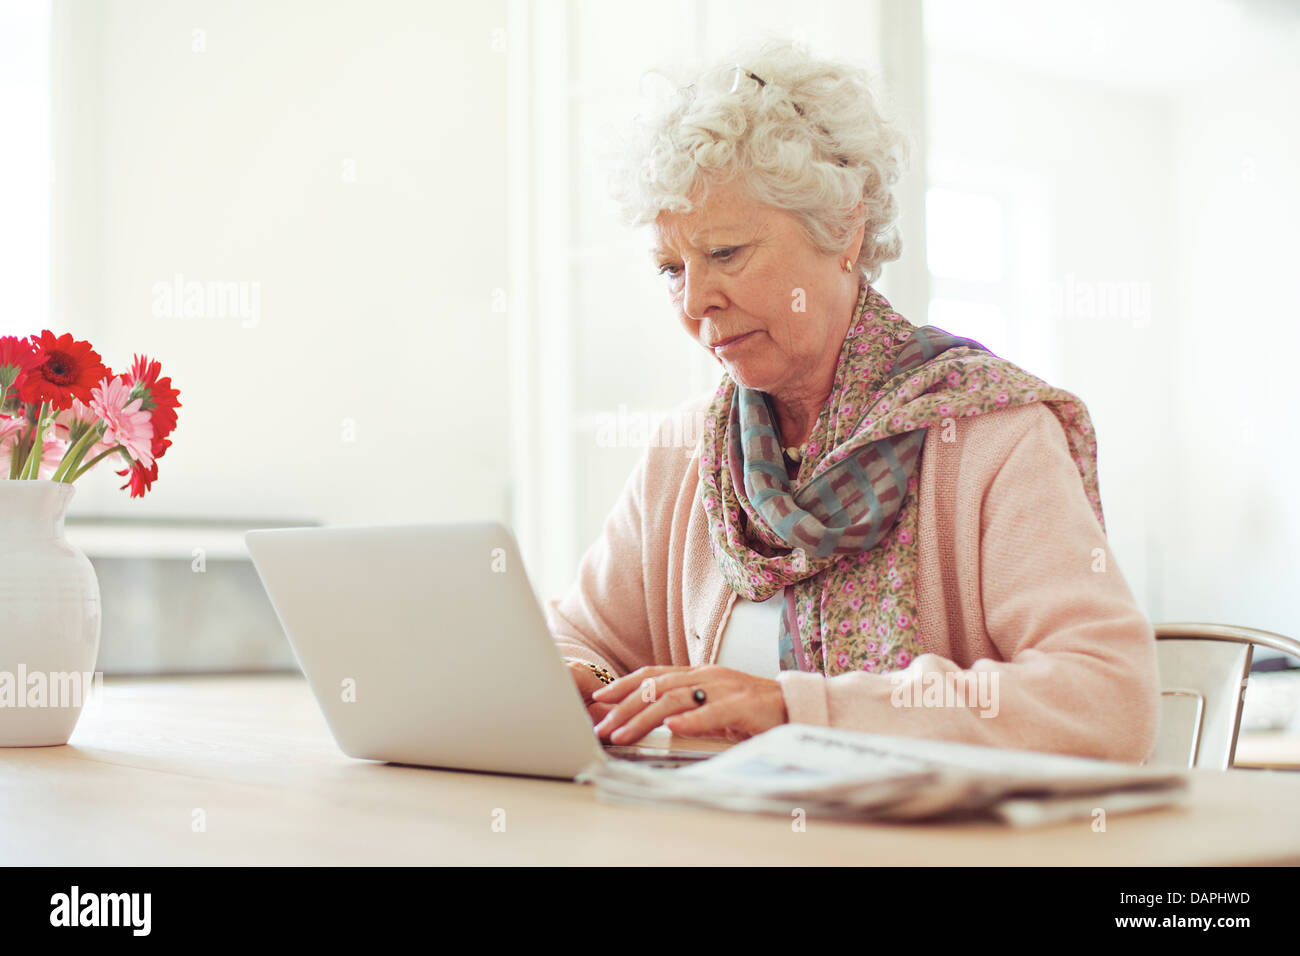 Elderly woman at home typing something using her laptop - Stock Image